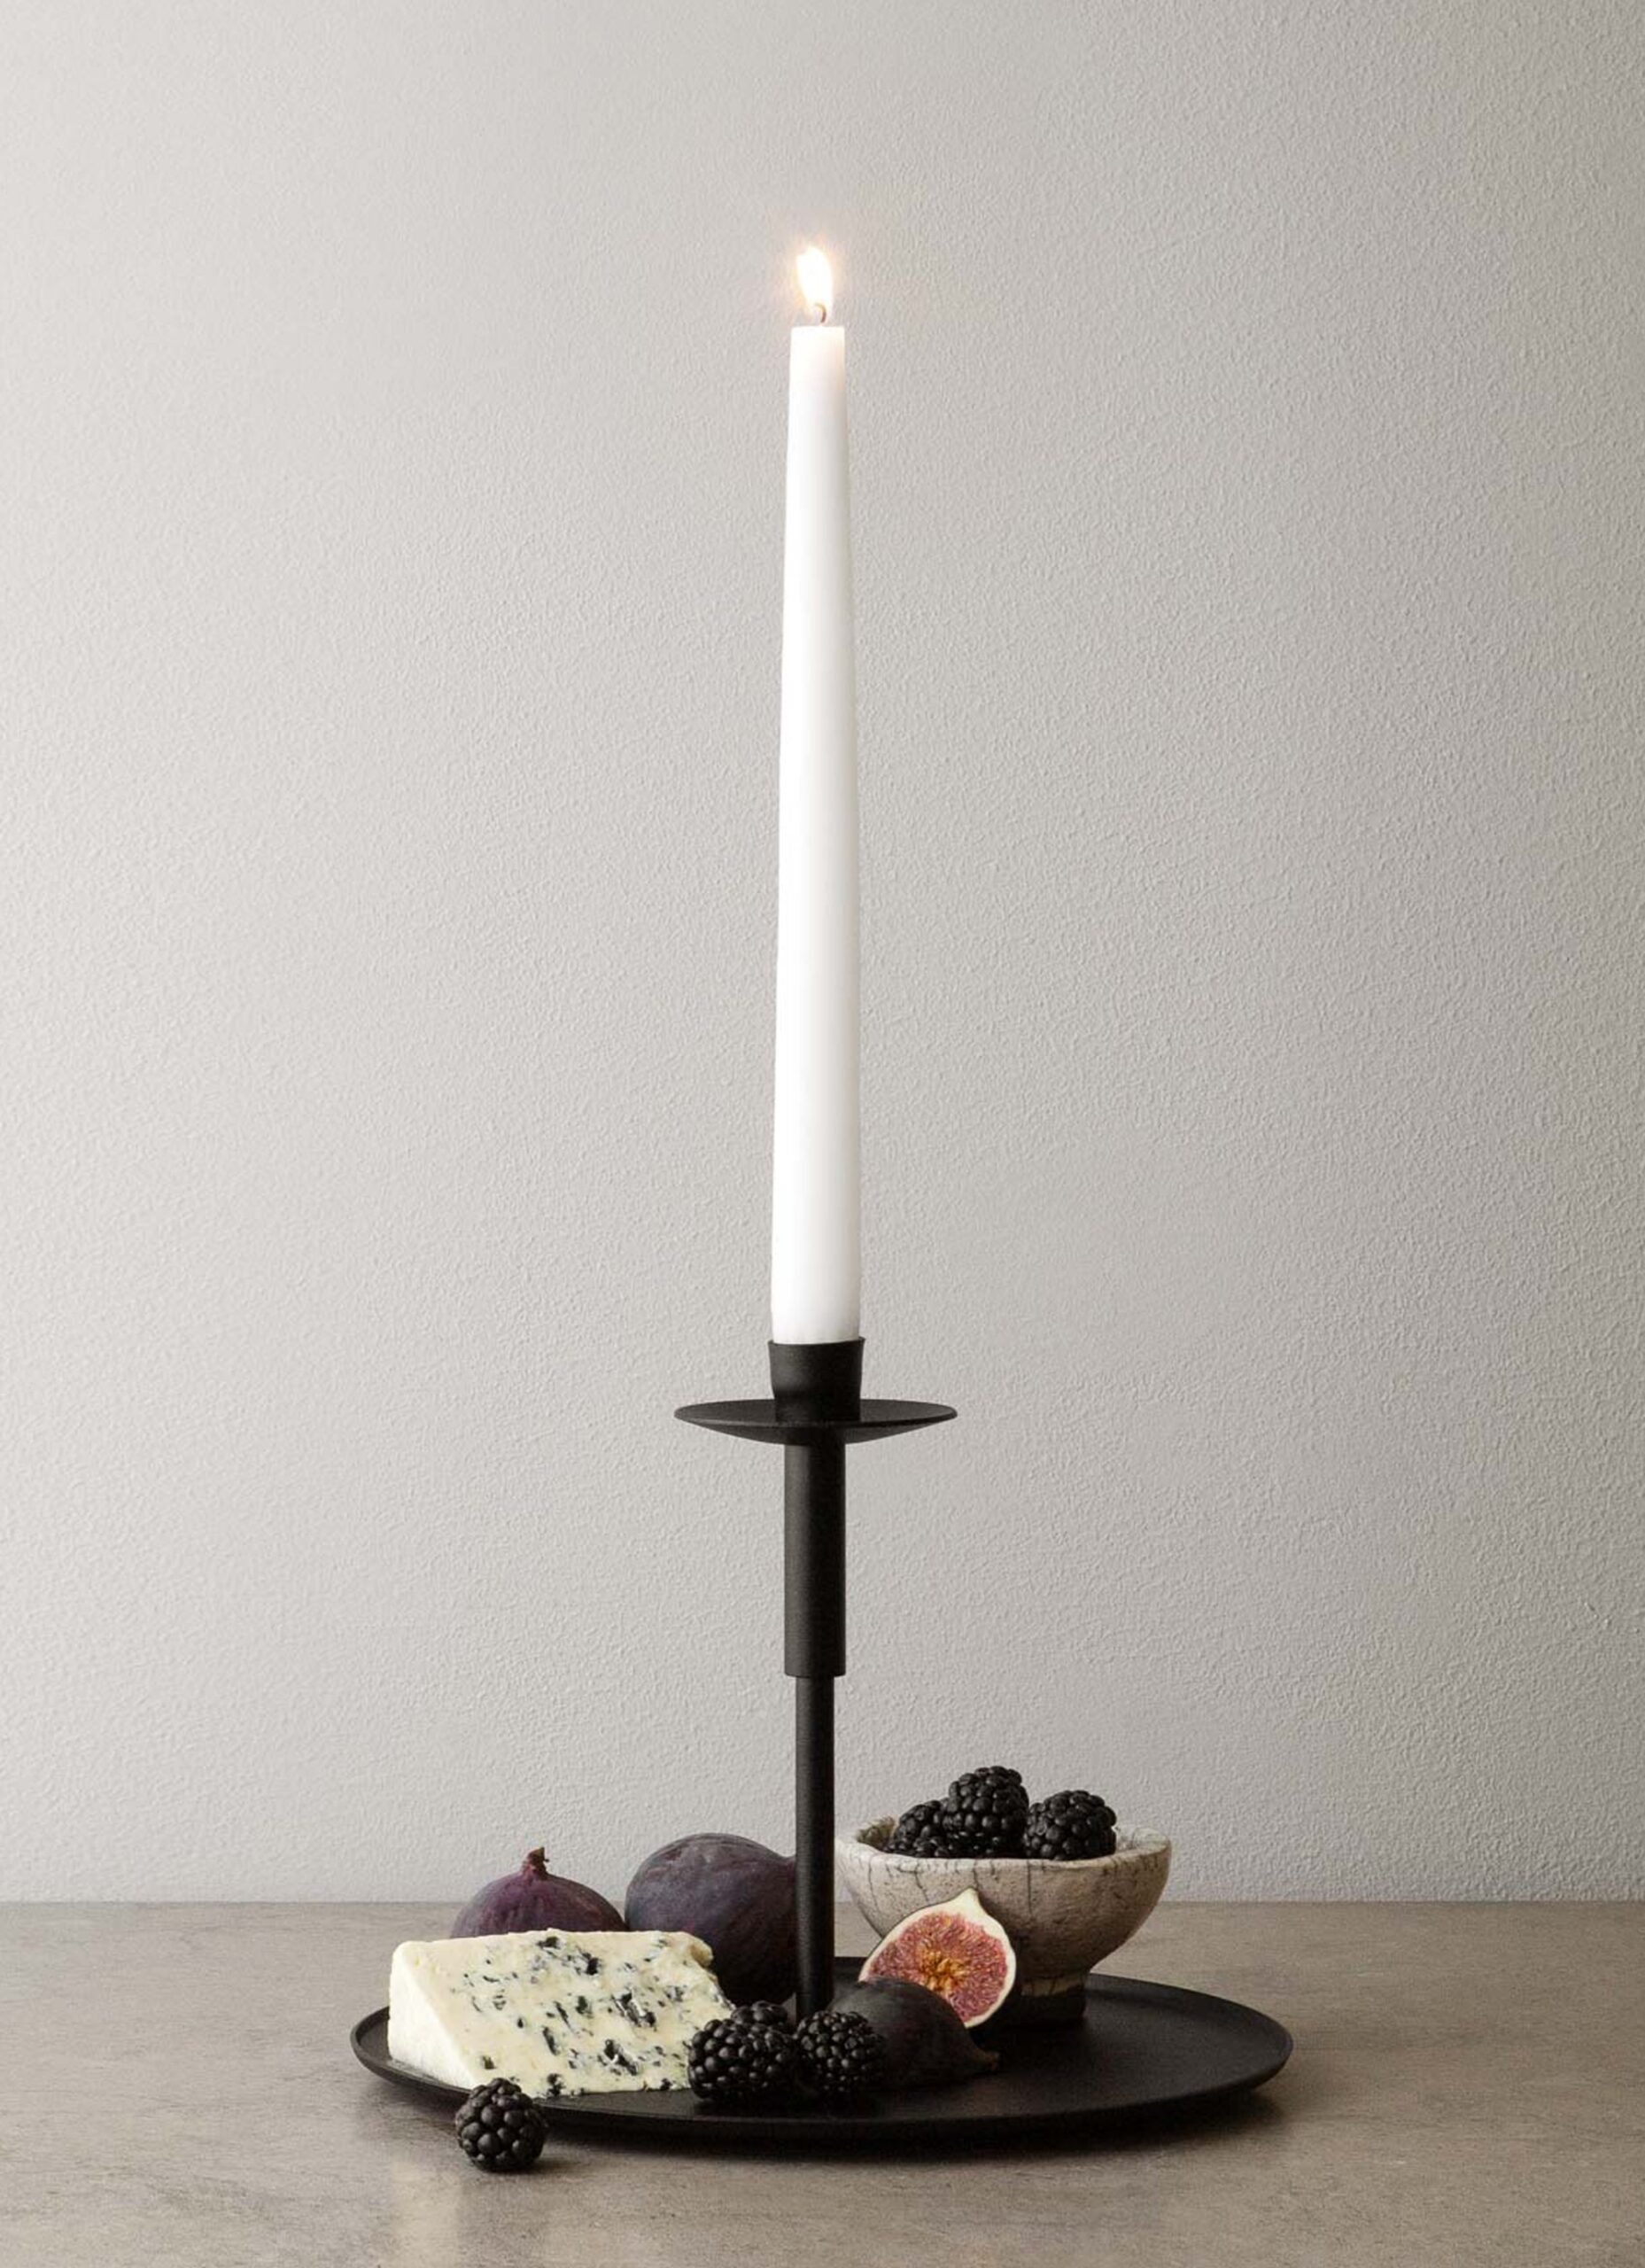 Vages - Handmade Cast Iron Candle Holder and Plate - Traedet